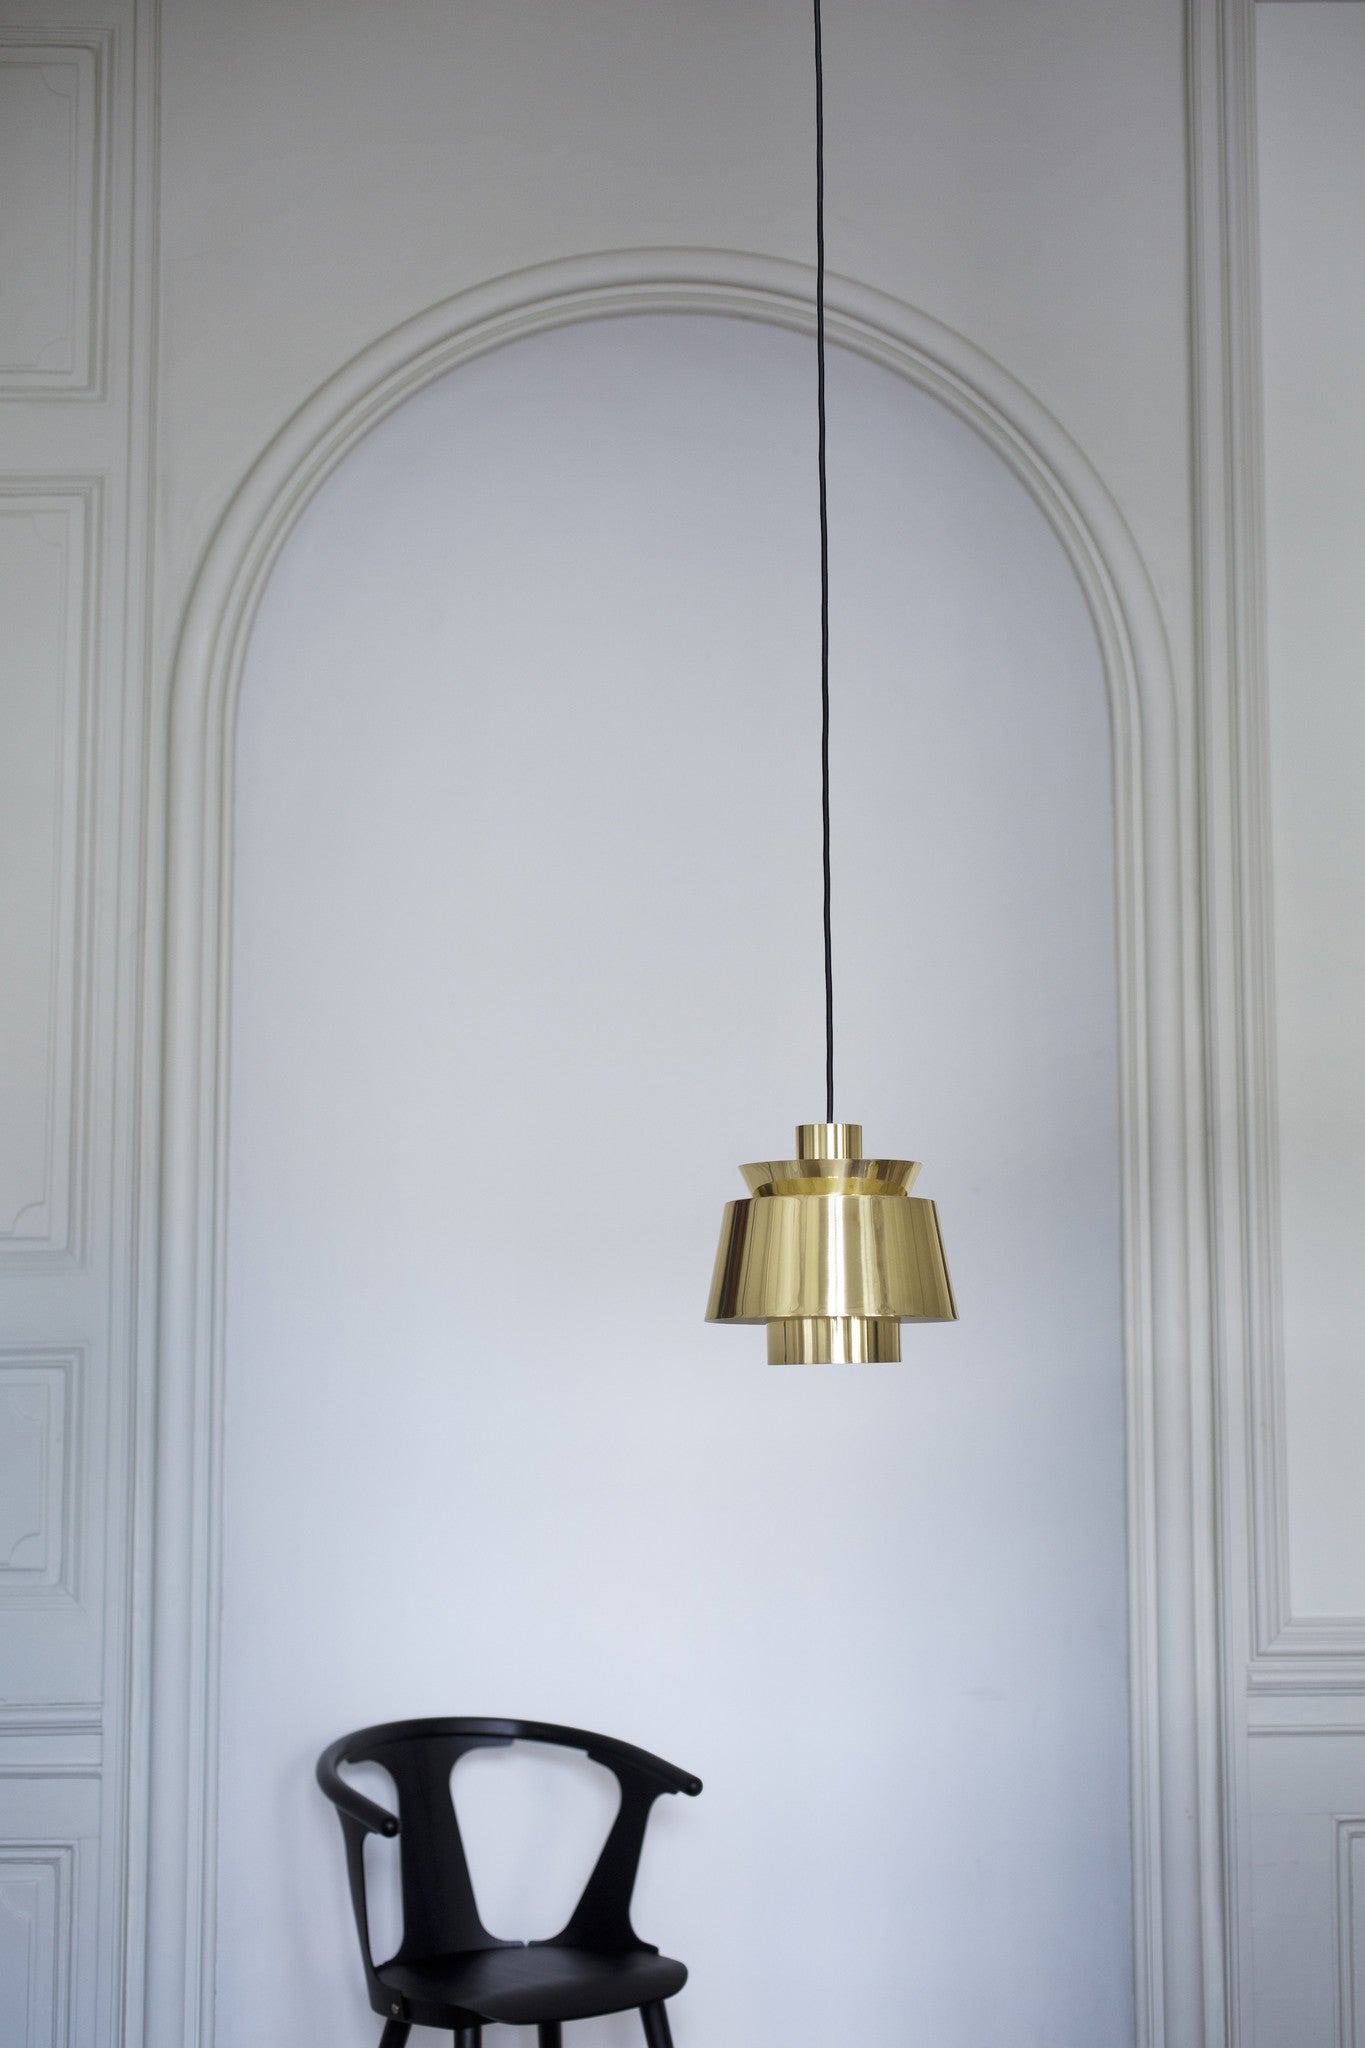 Lampa Utzon LAMPJU1 - &tradition